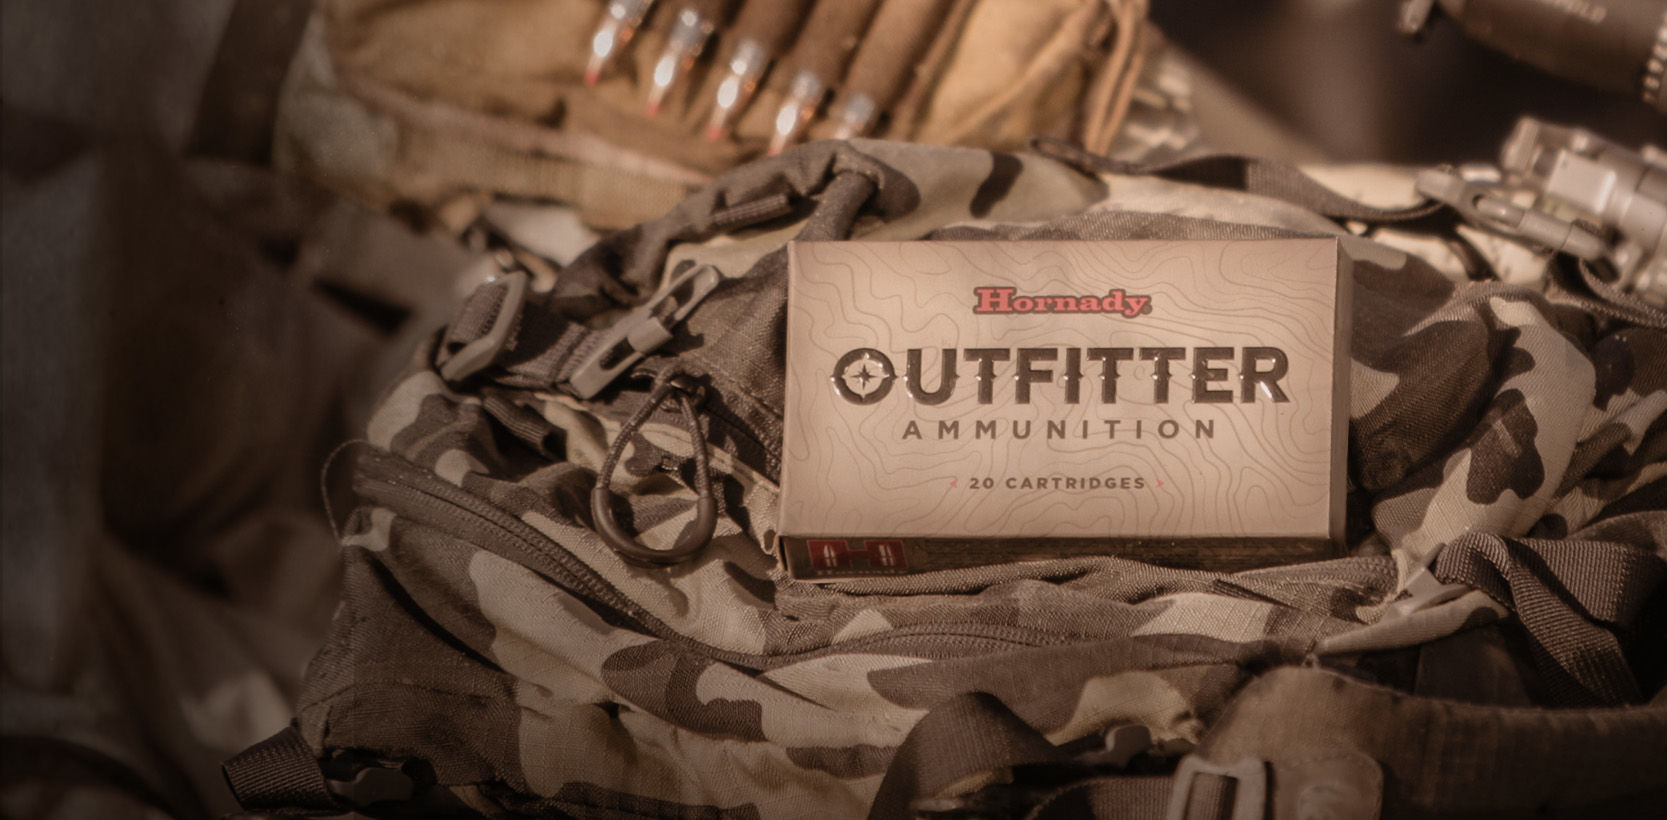 Accurate, Deadly, Dependable - Hornady Manufacturing, Inc